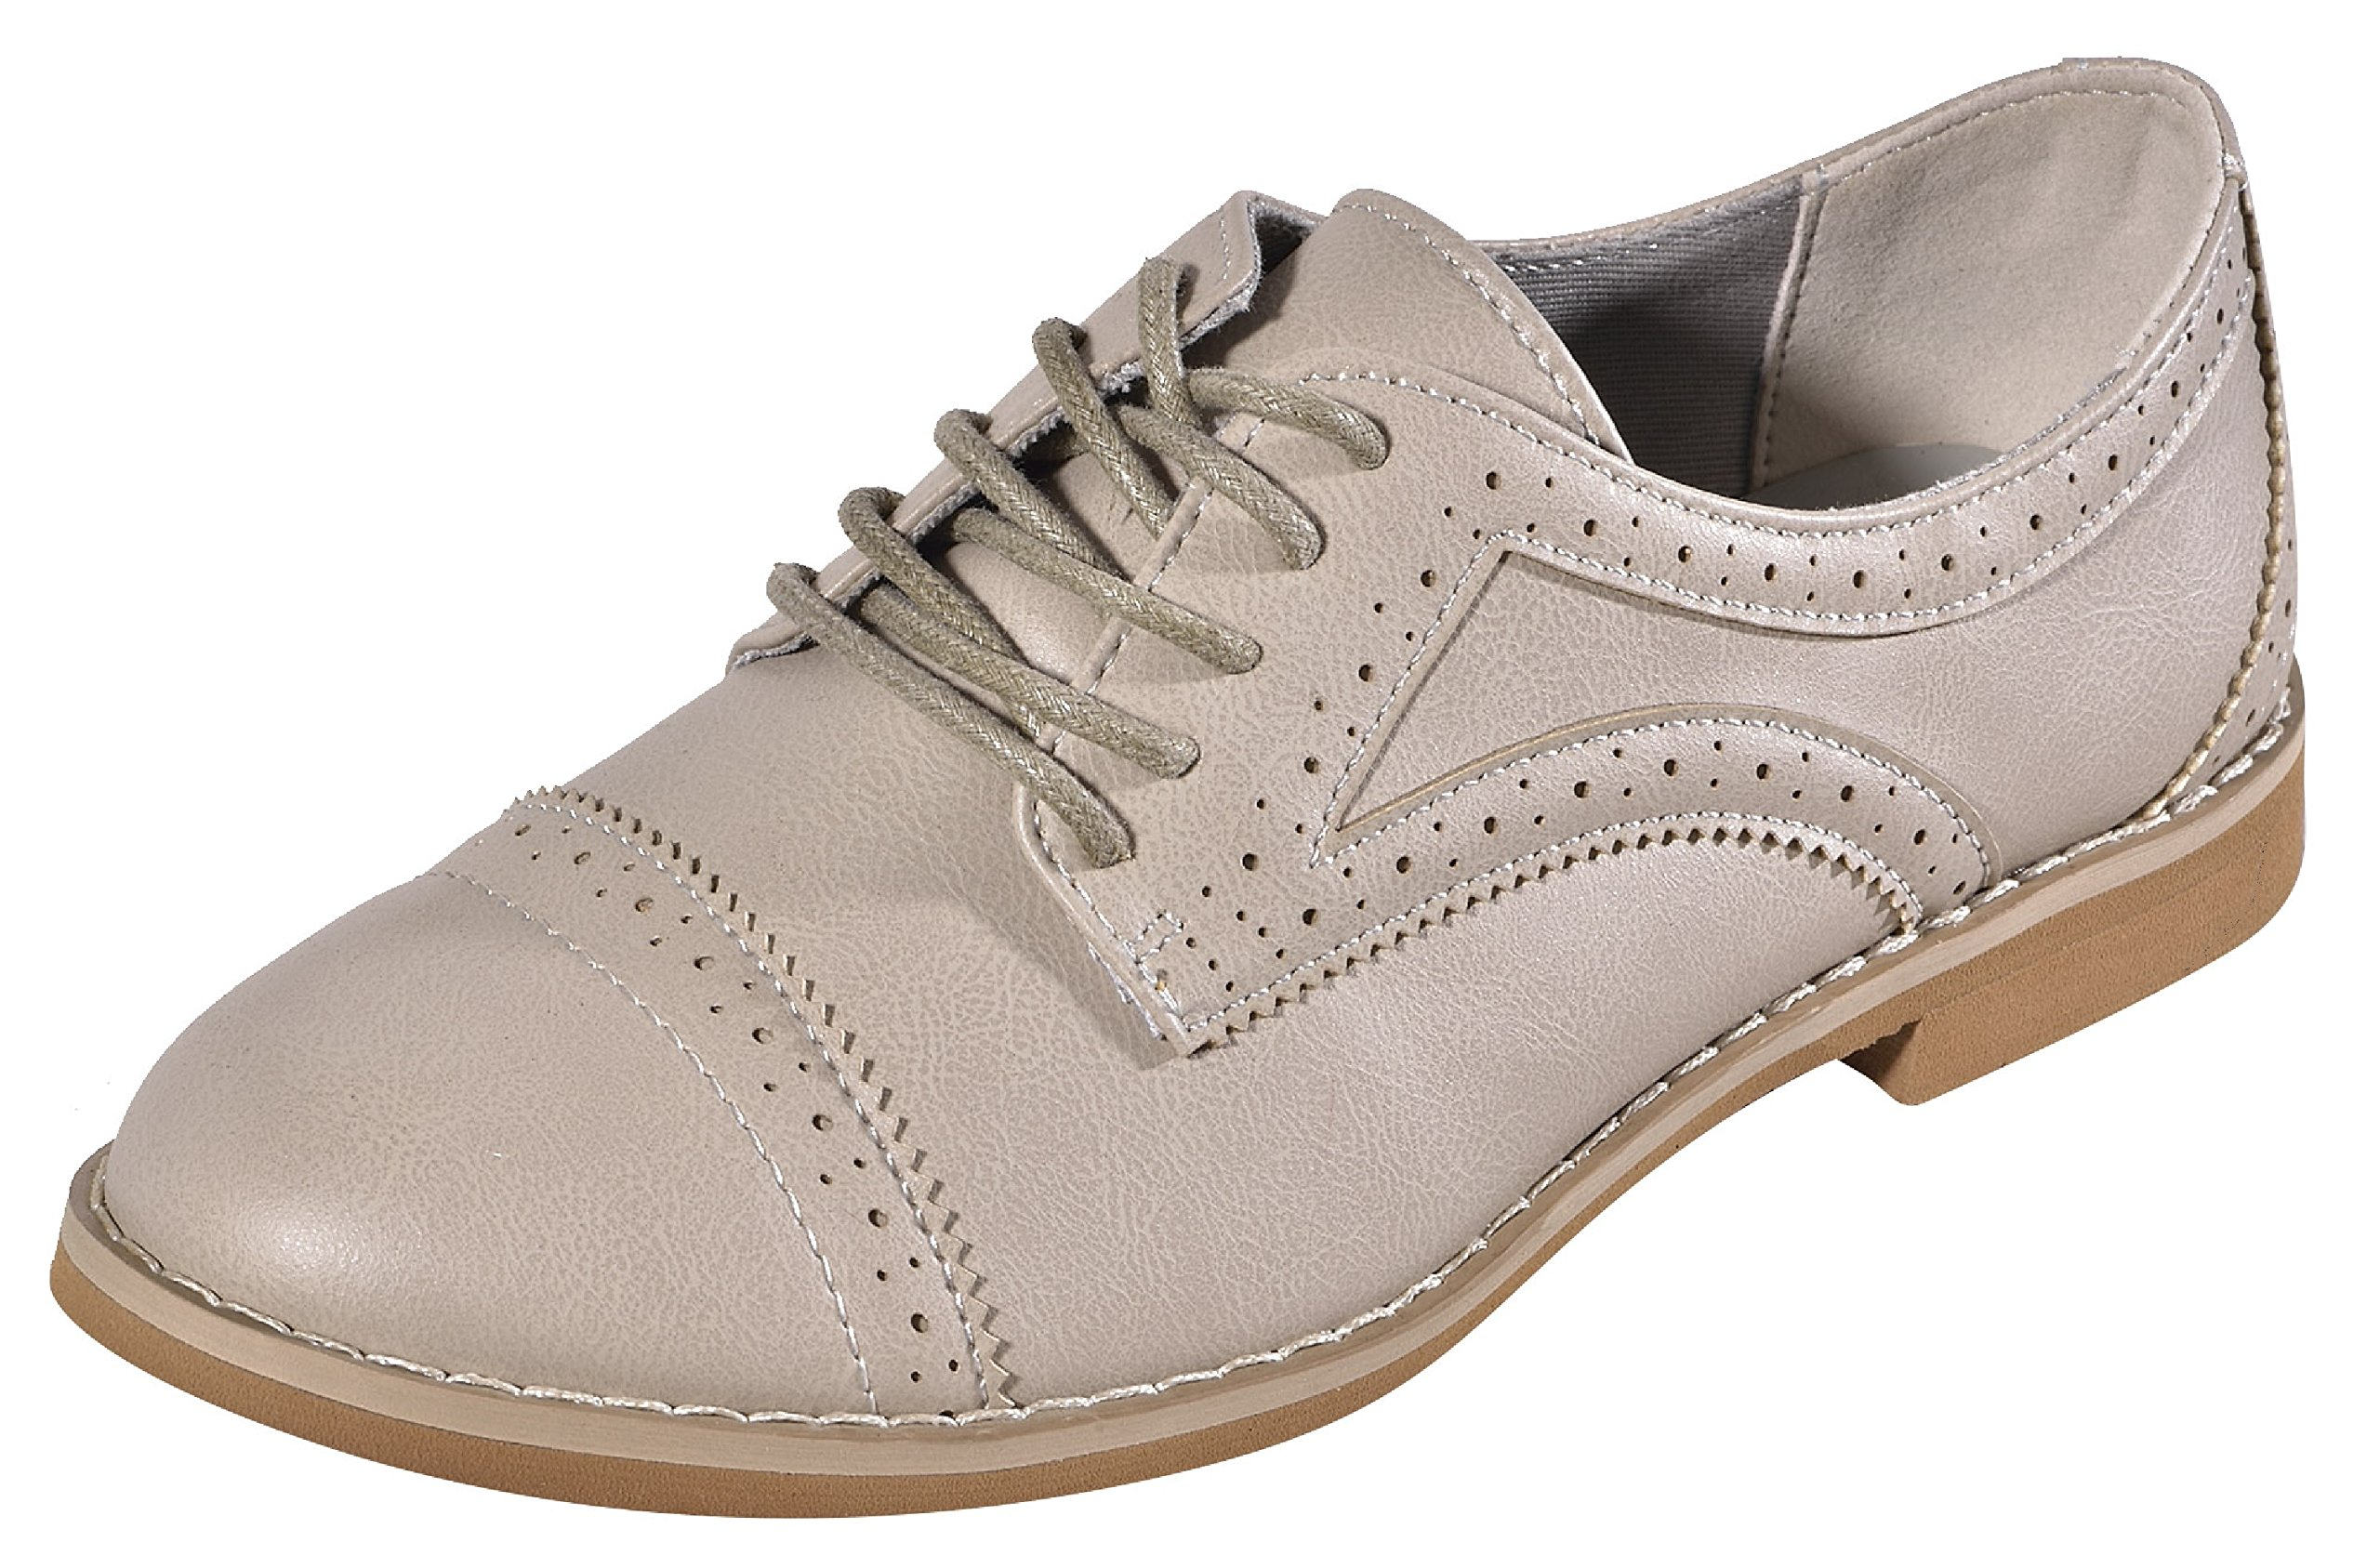 Most Popular Quality Prime Alyn Gray Comfortable Vegan Leather Oxford Style Closed Toe with Laces Small Heel Unique Top Designer Loafer Work 2018 Ladies Women Teen Girl (Size 6.5, Gray)